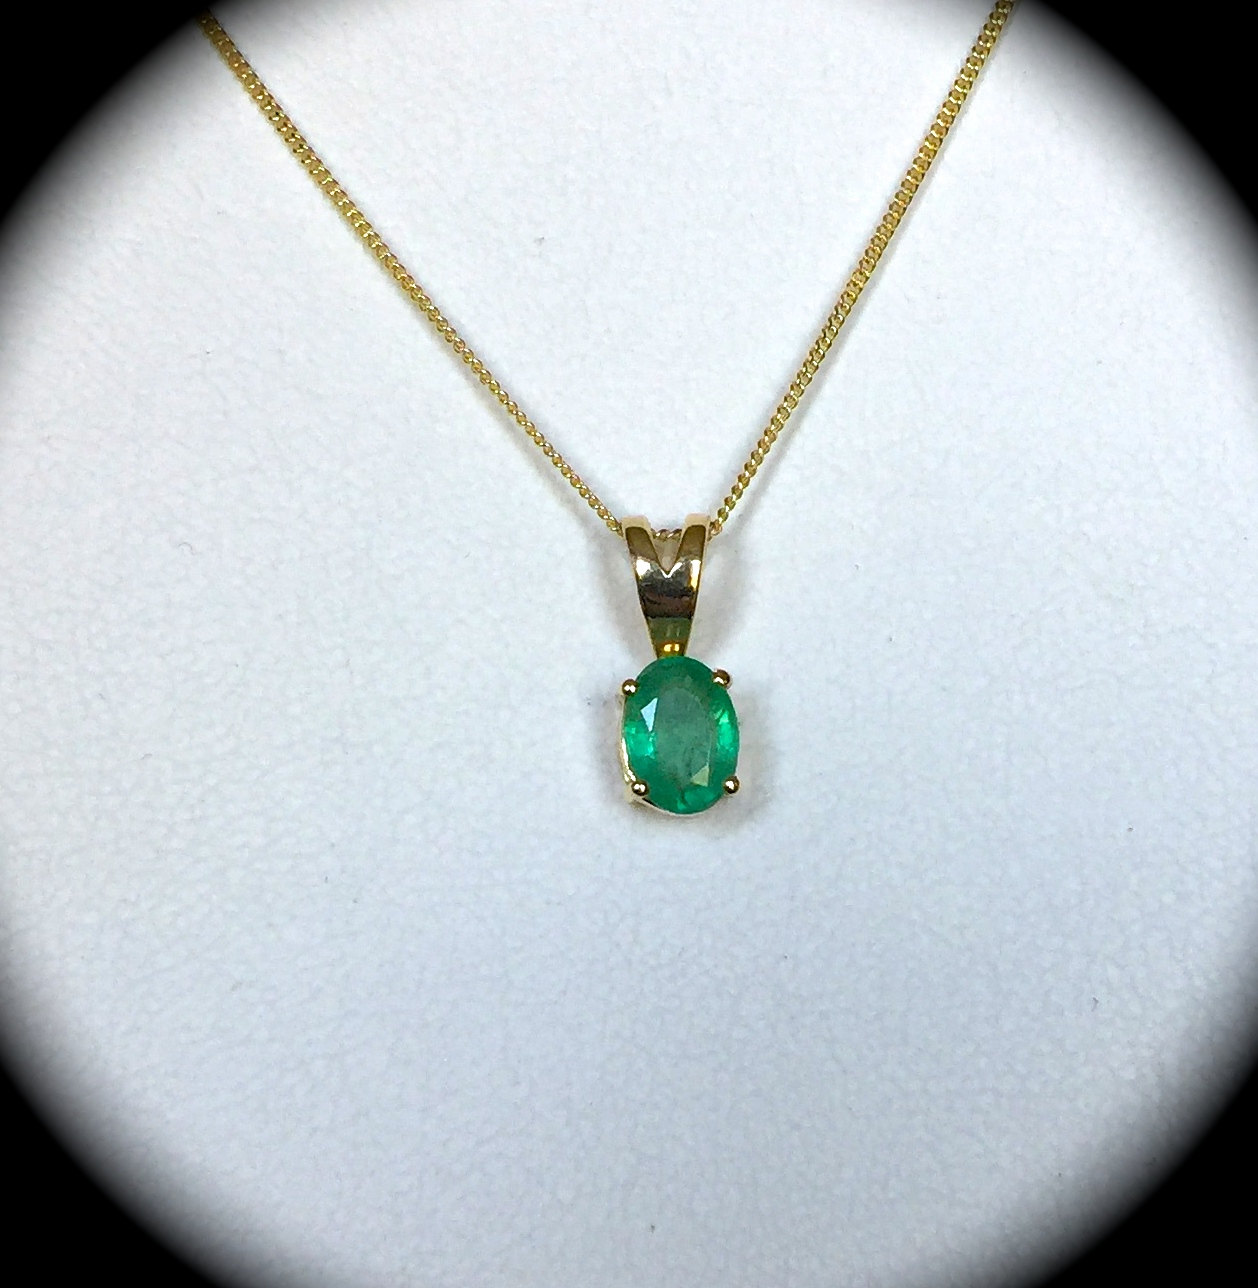 pendant lemx product nd zoom gold in necklace margaret designers natural solow emerald